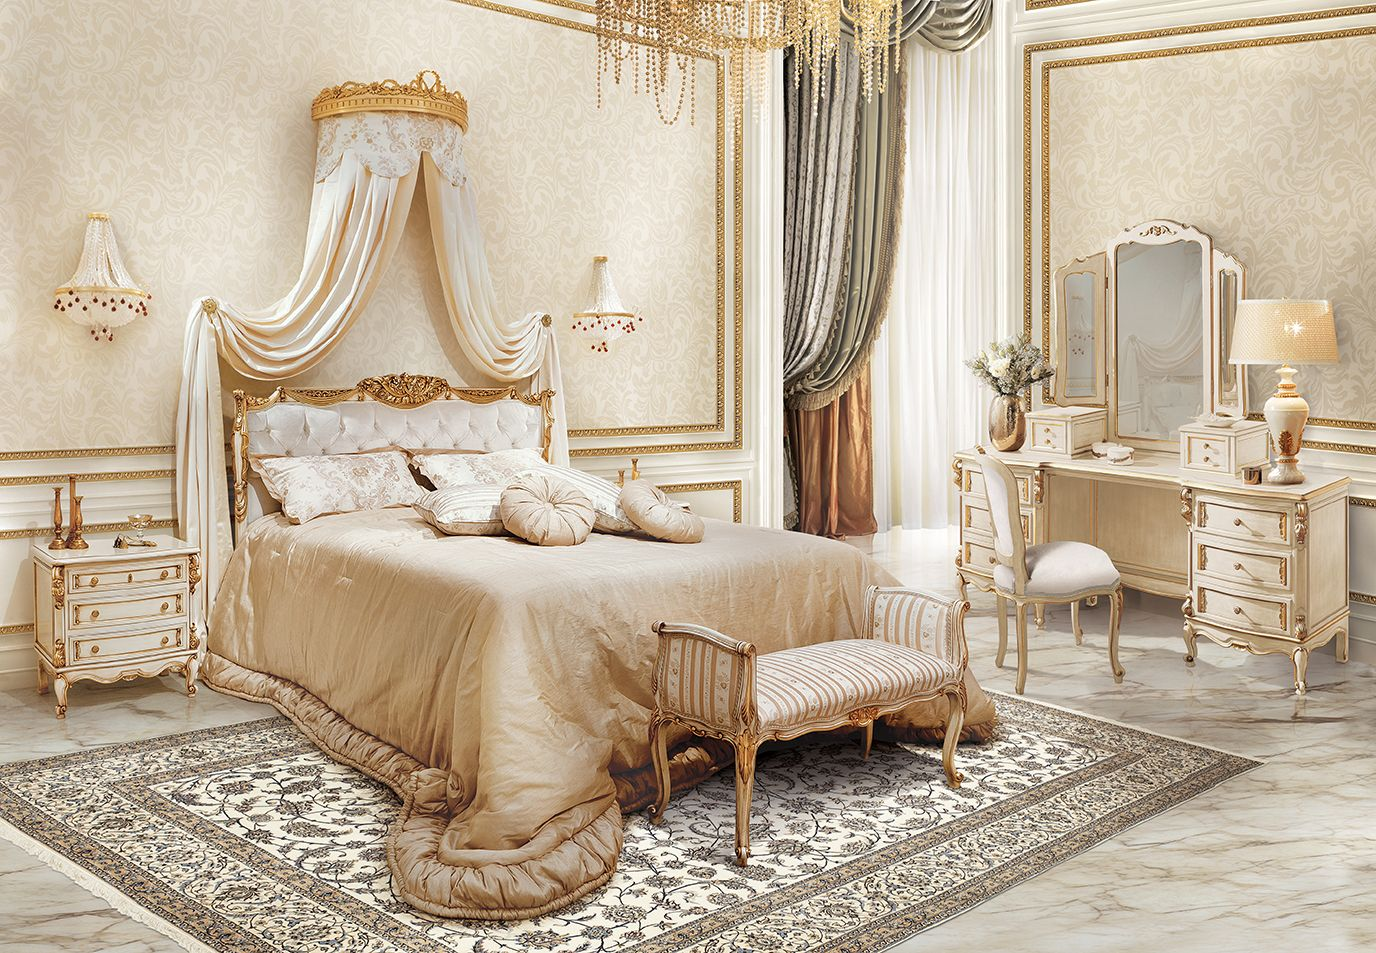 Italian Furniture Bedroom Schumann Luxury Elegant Italian Bedroom Furniture For The